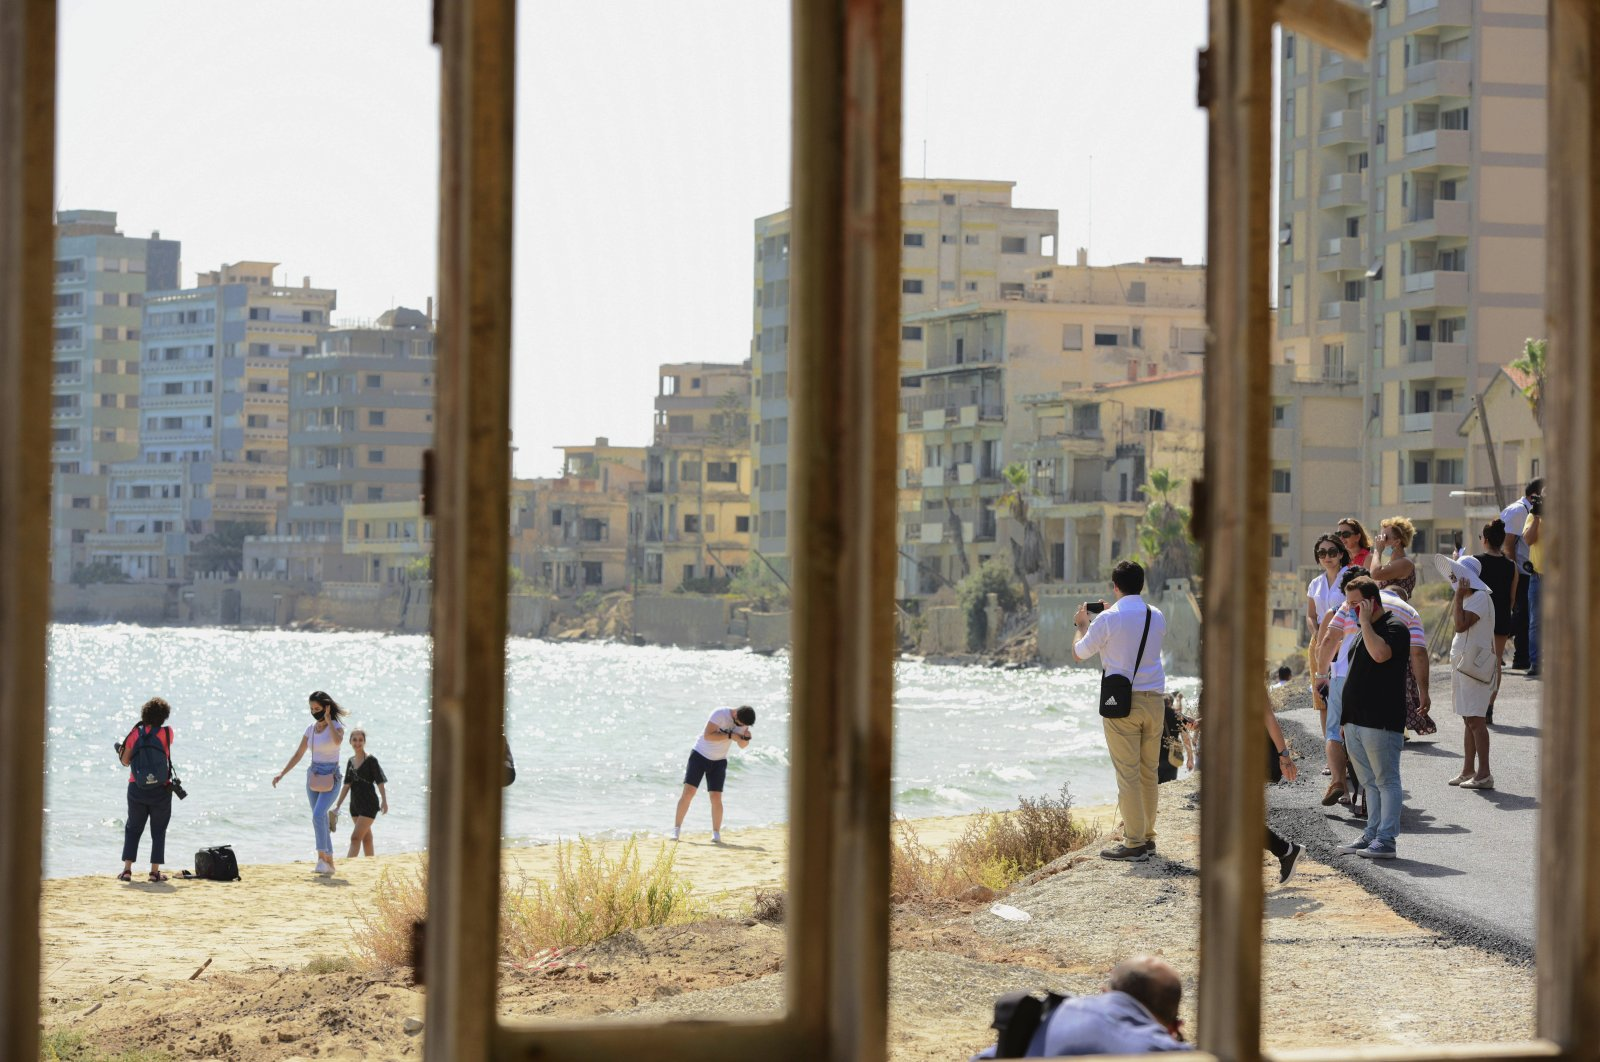 Journalists and the public are seen through a window frame at the beach lined with abandoned hotels, after the reopening of Varosha, in the fenced-off area of Gazimağosa (Famagusta), TRNC, Oct. 8, 2020. (AP Photo)